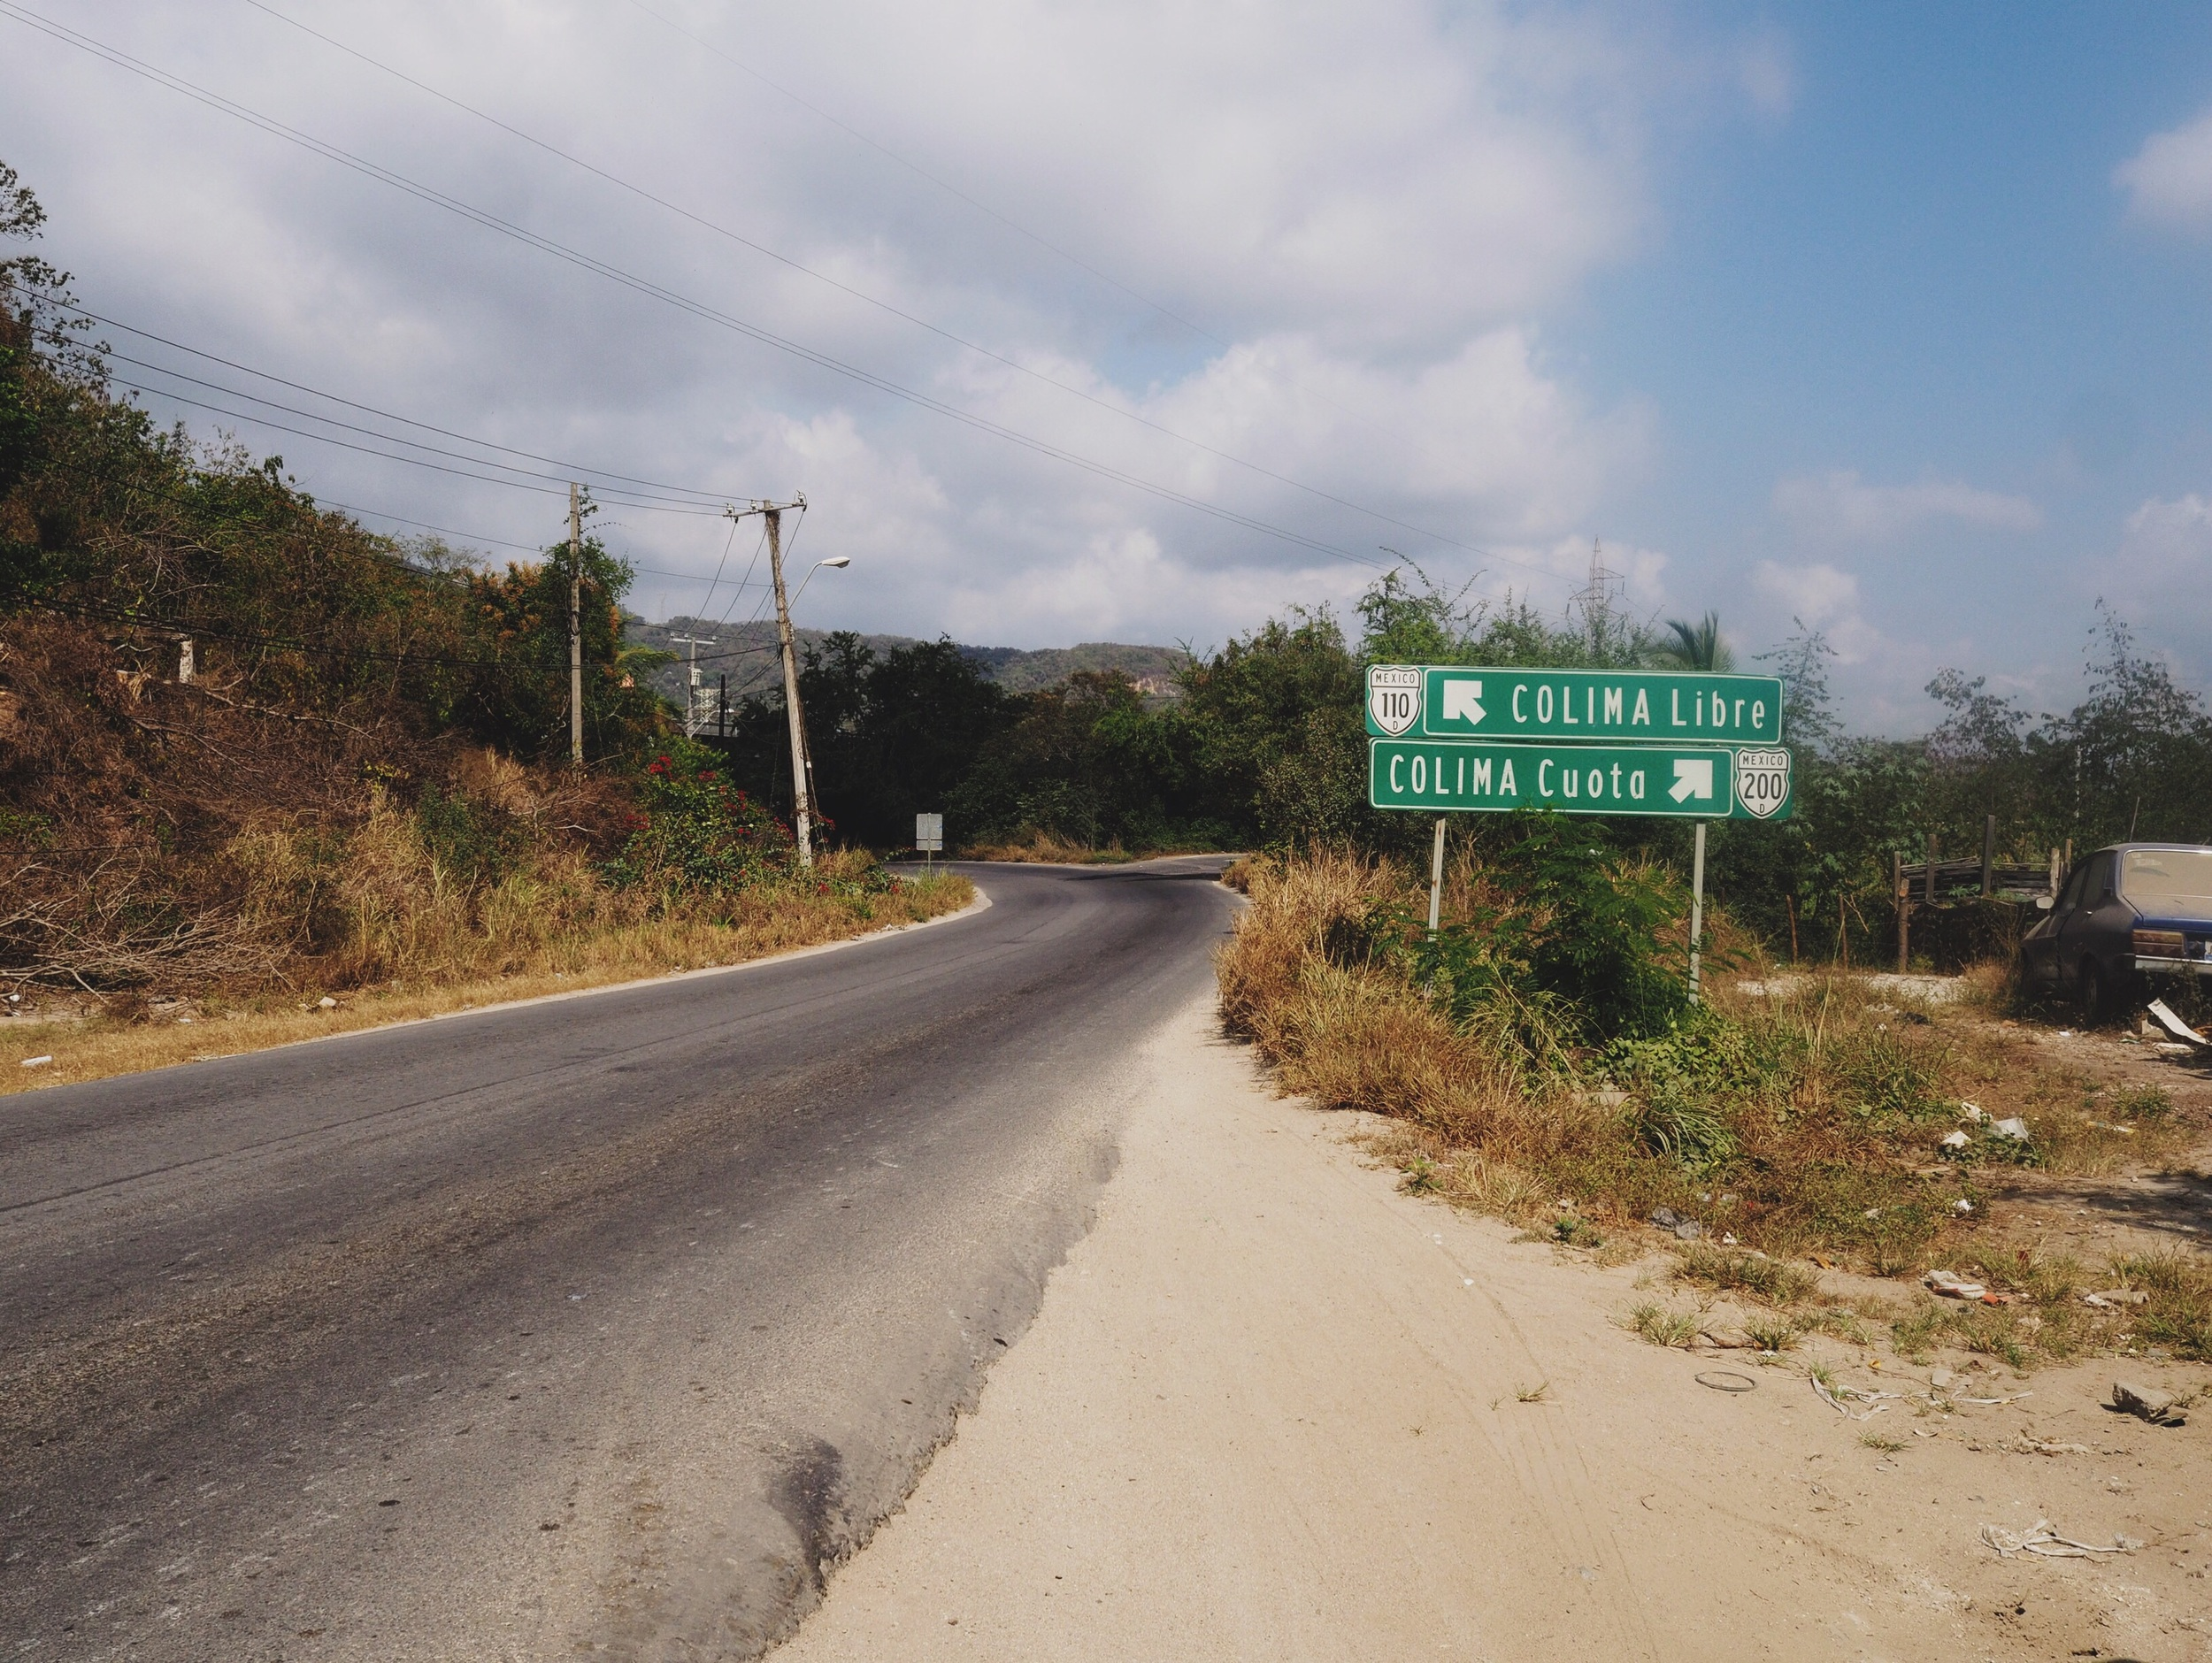 We opted to take the toll road (cuota) into Colima, with more traffic but a nice shoulder